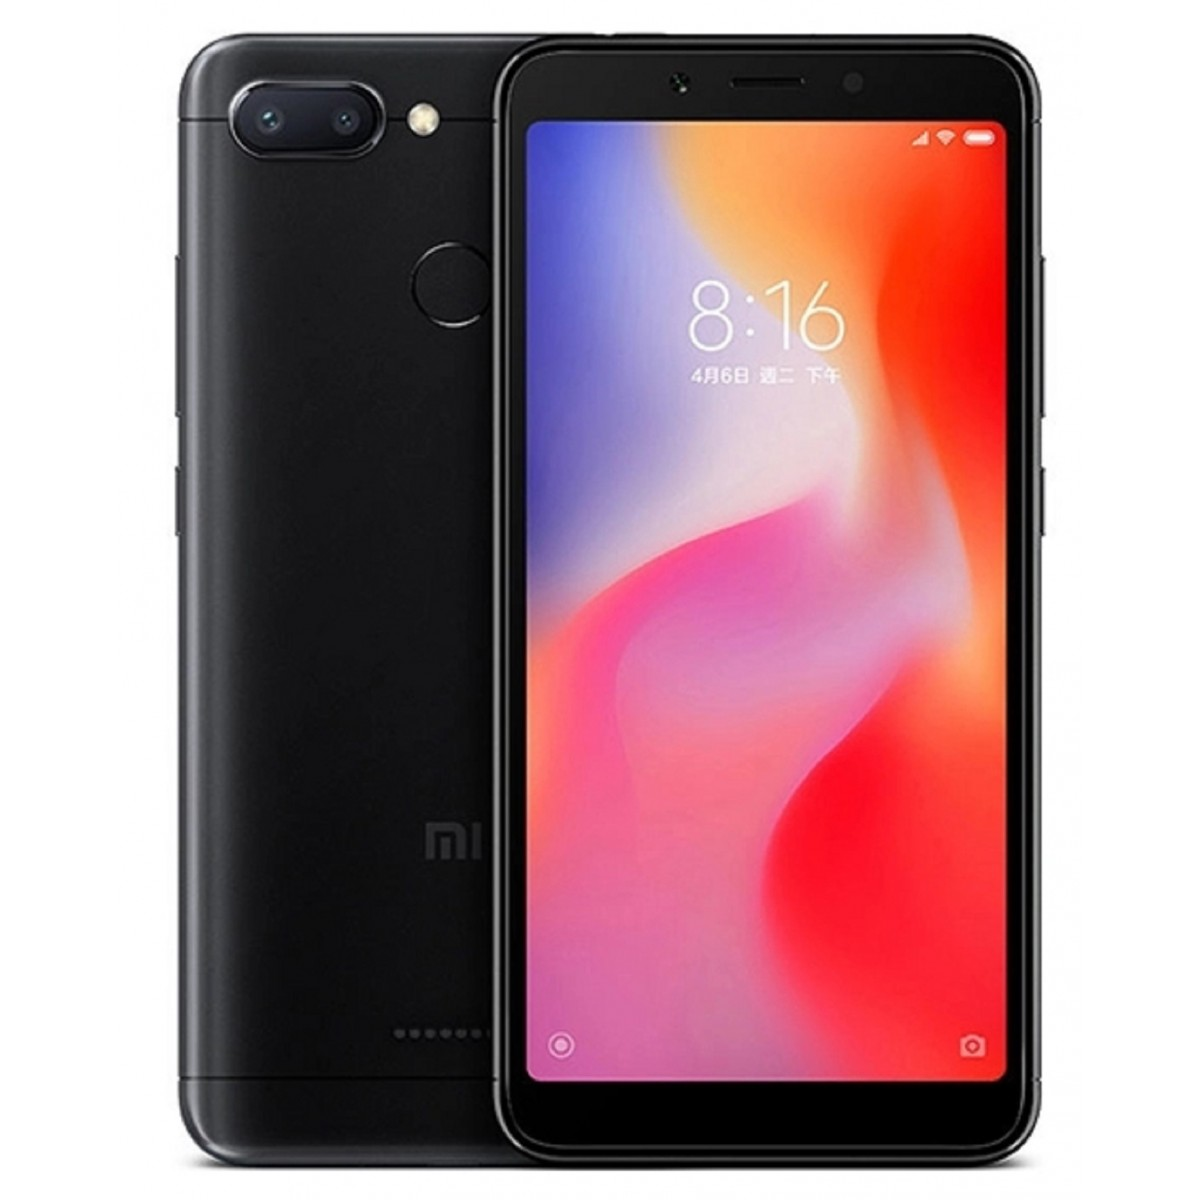 Image of Xiaomi Redmi 6 3GB/ 32GB Dual Sim SIM FREE/ UNLOCKED - Black